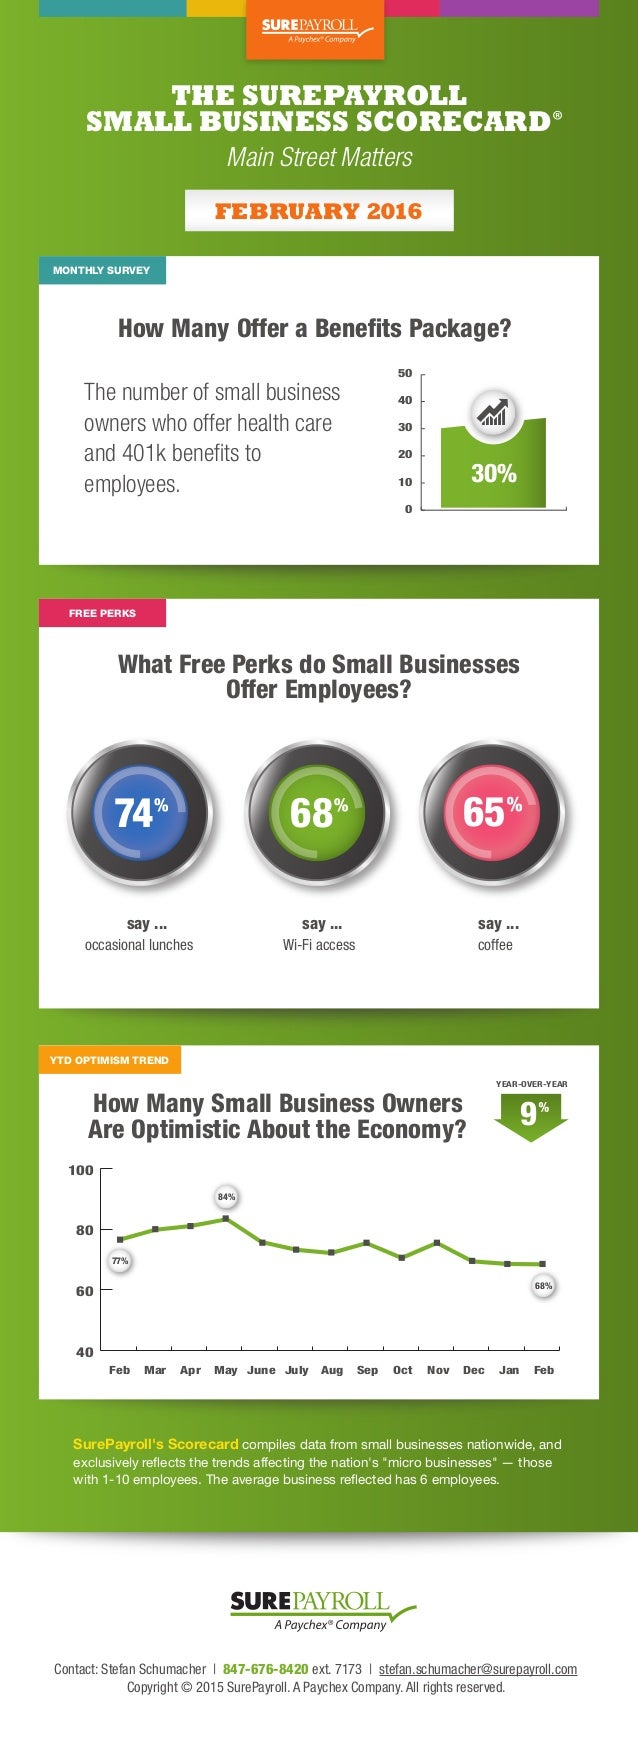 THE SUREPAYROLL SMALL BUSINESS SCORECARD How Many Offer a Benefits Package? What Free Perks do Small Businesses Offer Emplo...